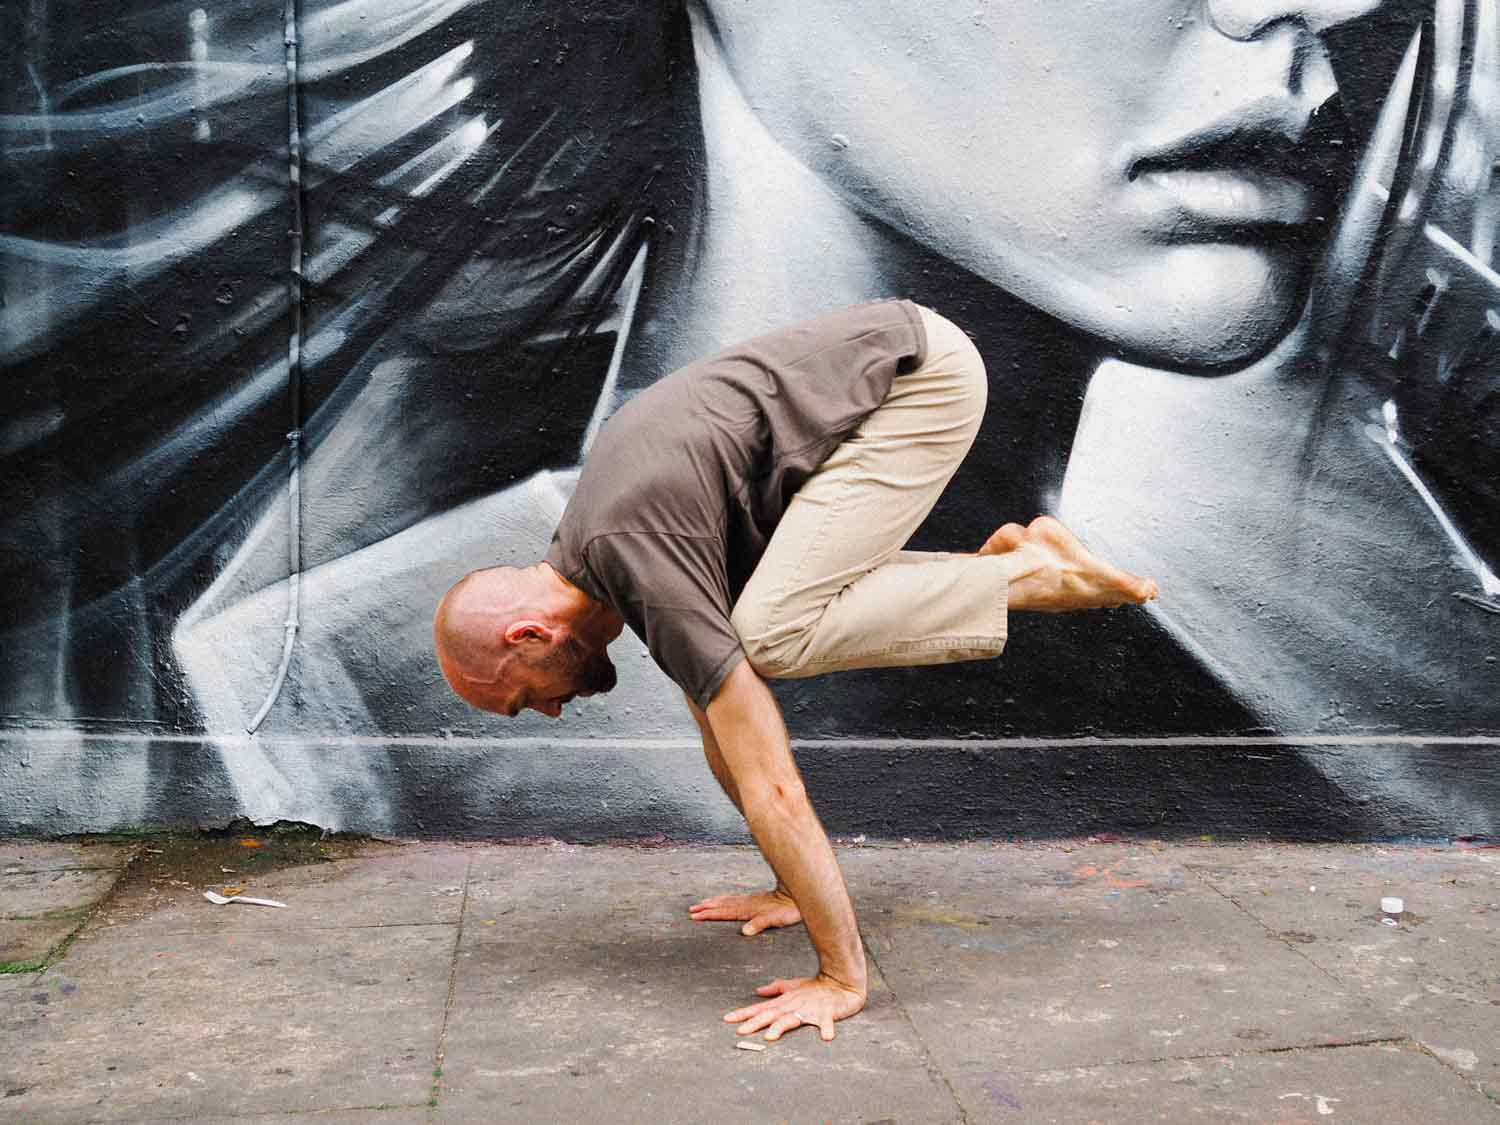 Matt Gill in crow pose on a street in London